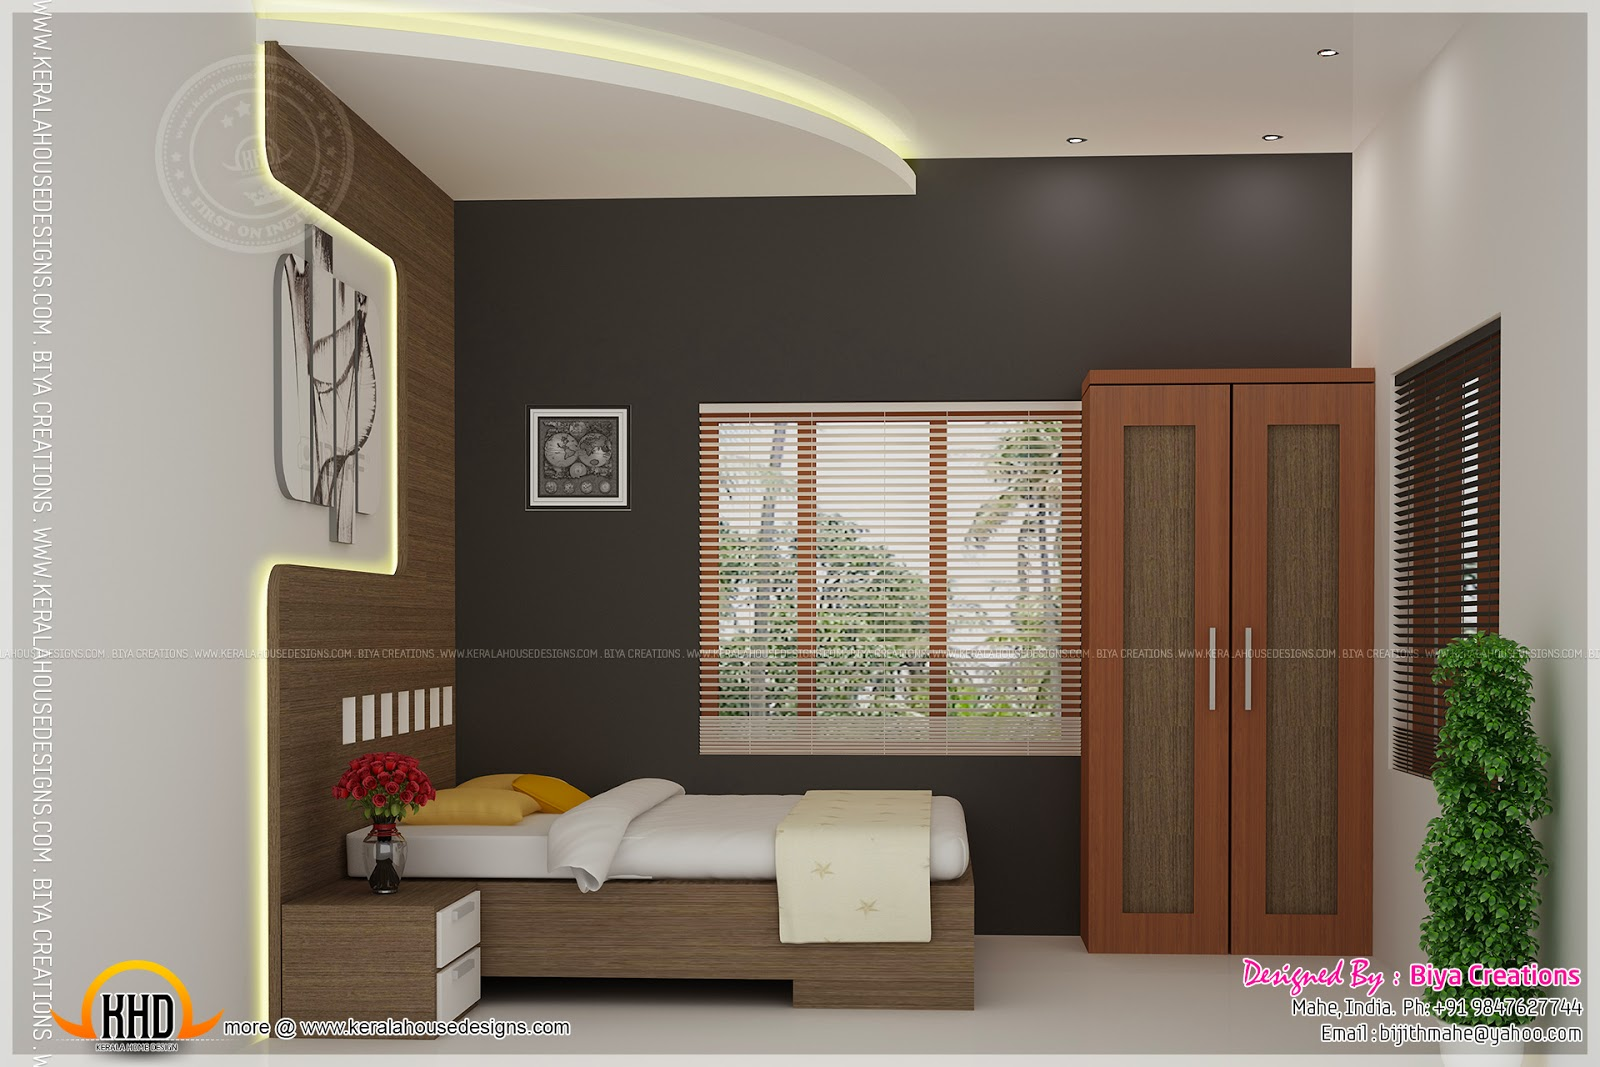 Bedroom kid bedroom and kitchen interior kerala home for House interior design ideas for small house